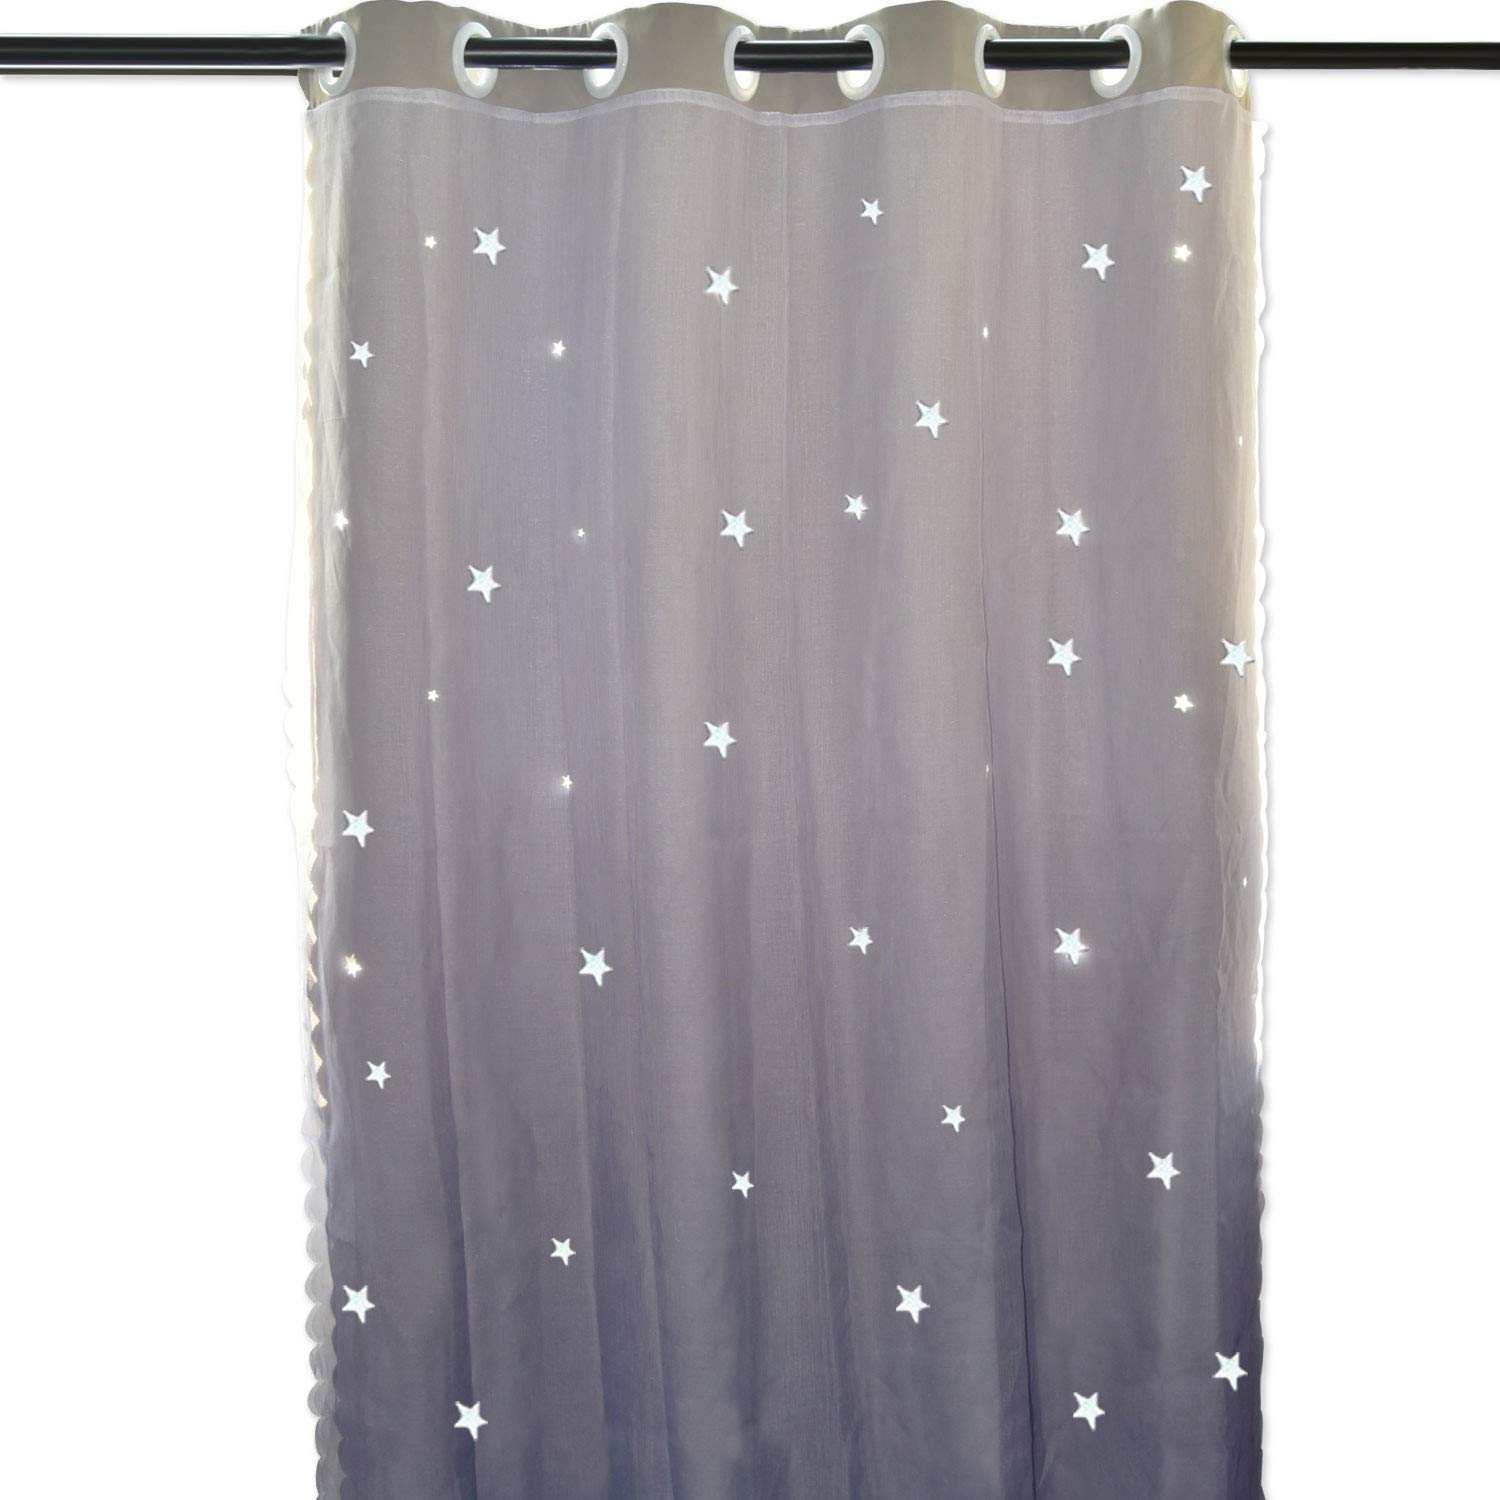 Hughapy Star Curtains Stars Blackout Curtains for Kids Girls Bedroom Living Room Double Layer Star Cut Out Sparkle Blackout Gradient Window Curtains, 1 Panel -(52W x 84L, Grey) by Hughapy